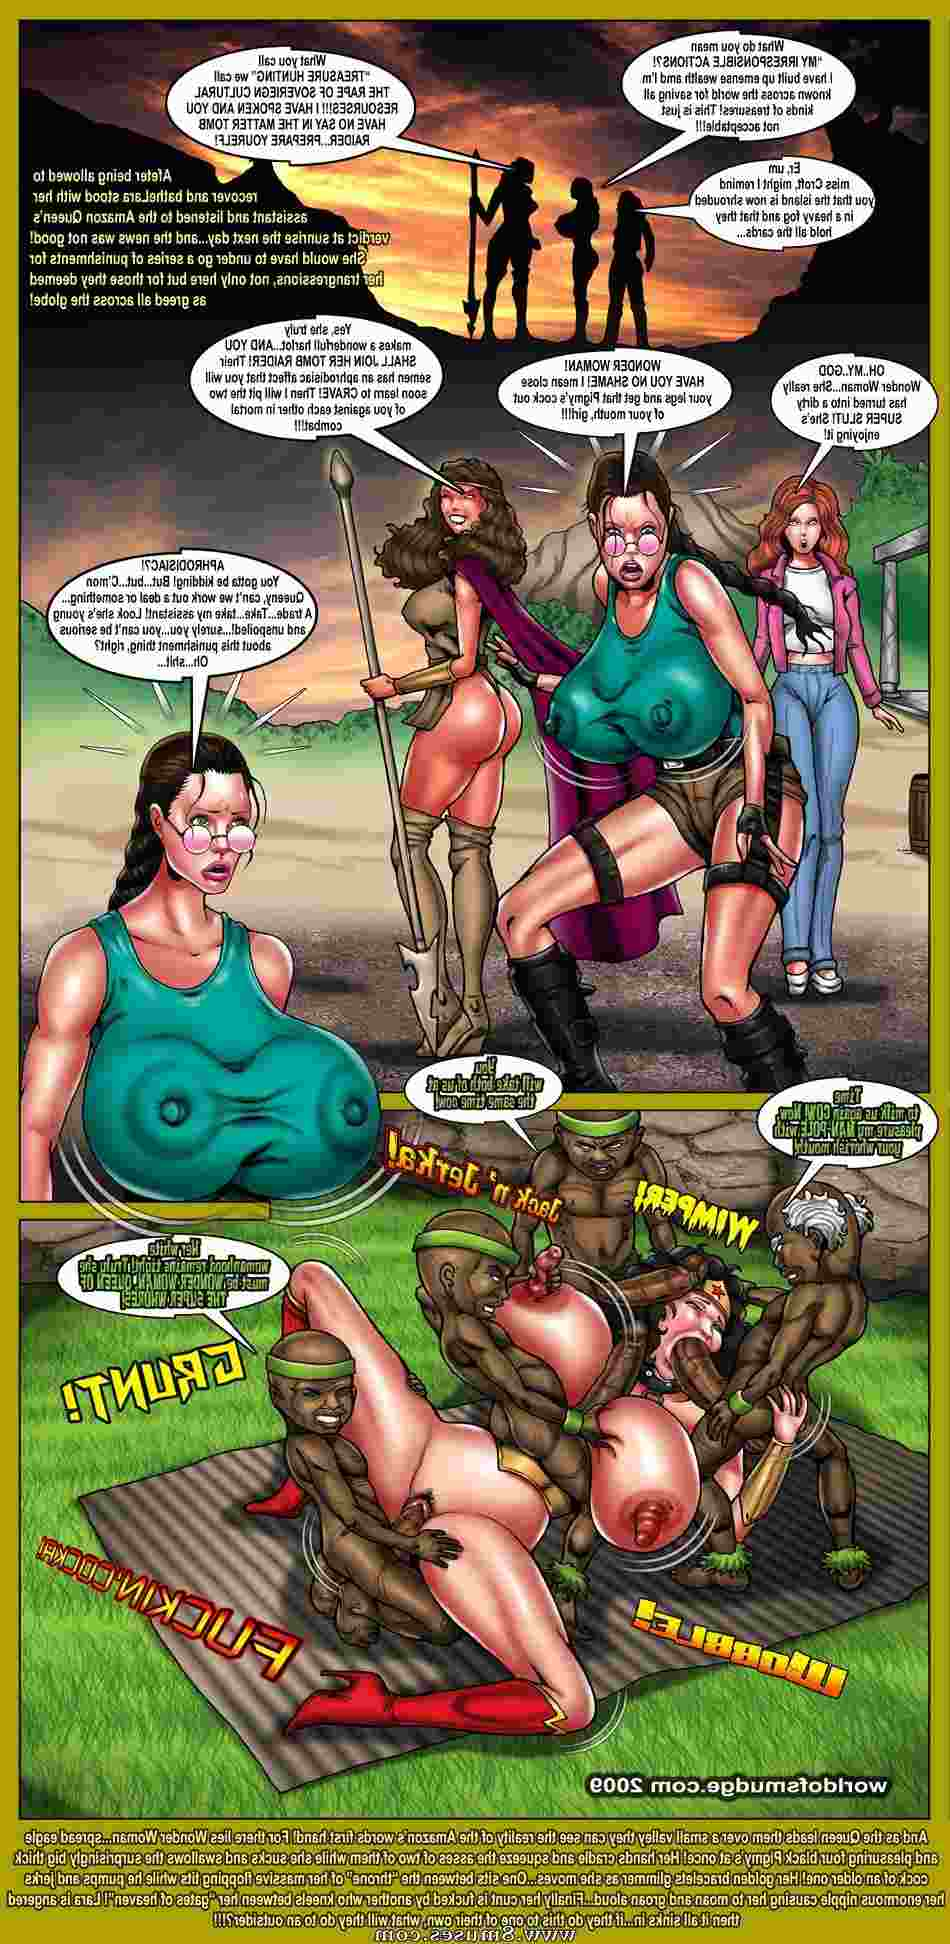 Smudge-Comics/Superheroes/Tomb-Raider-Lara-Croft Tomb_Raider_-_Lara_Croft__8muses_-_Sex_and_Porn_Comics_23.jpg